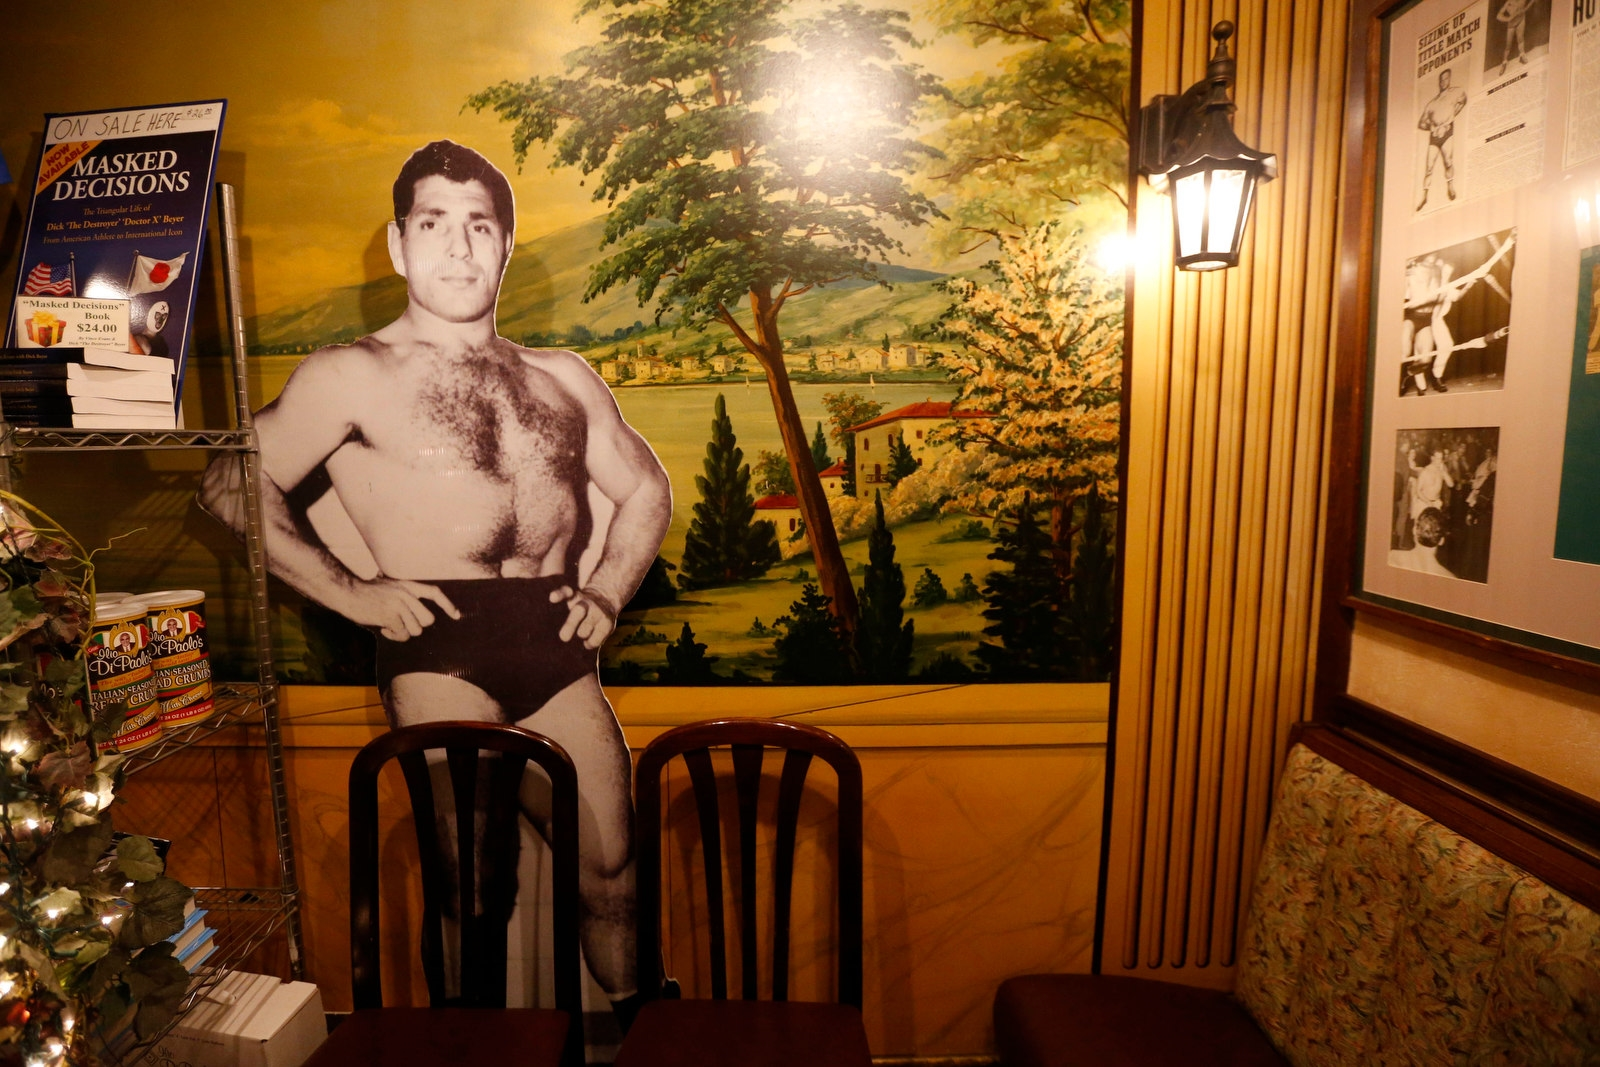 A large standup photo of Ilio DiPaolo greets customers as they enter the restaurant.